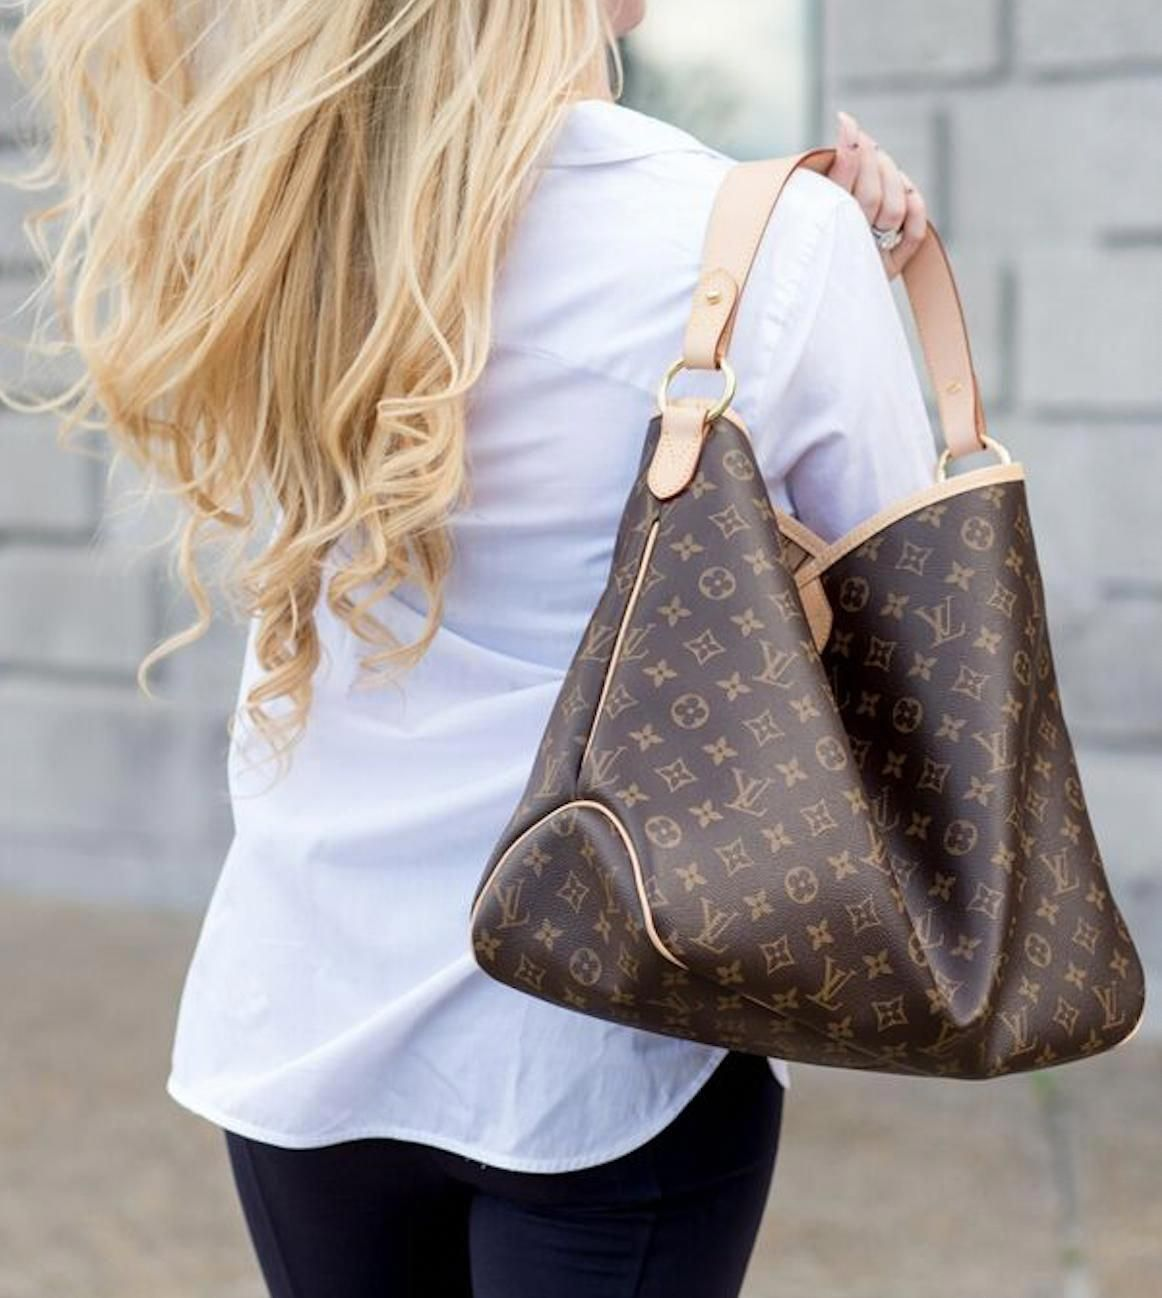 f907ea2a0ad Louis Vuitton Delightful MM - Beautiful luxury bags sold on consignment.   Louisvuittonhandbags